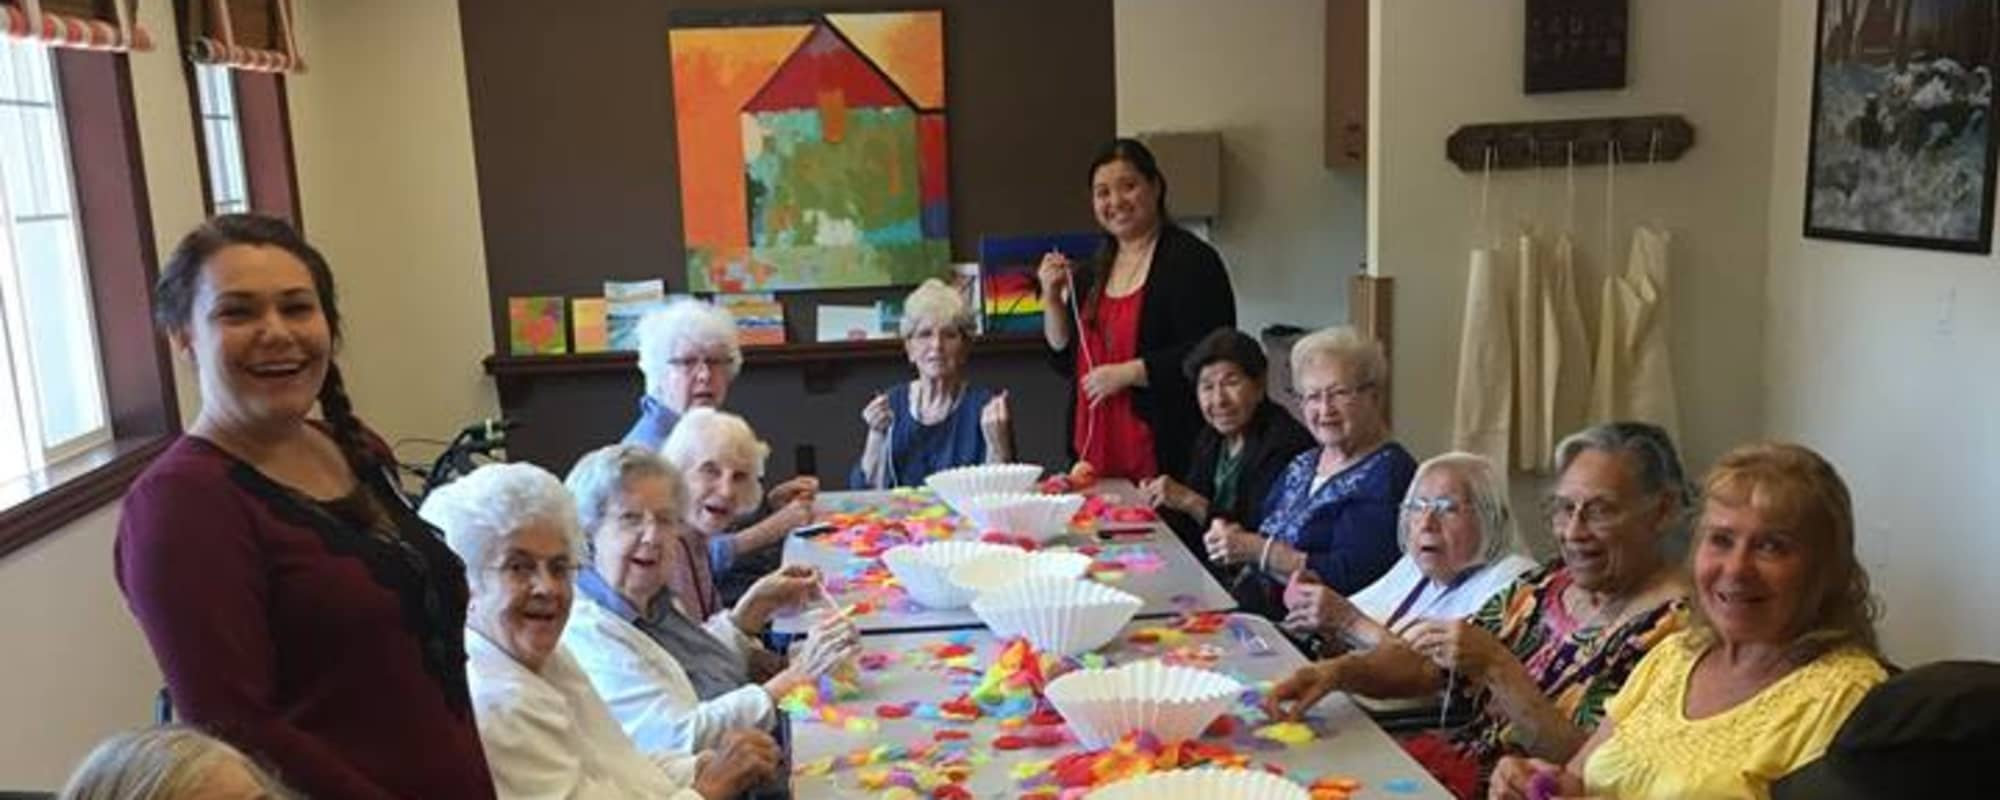 seniors doing arts and crafts at Estancia Del Sol in Corona, California